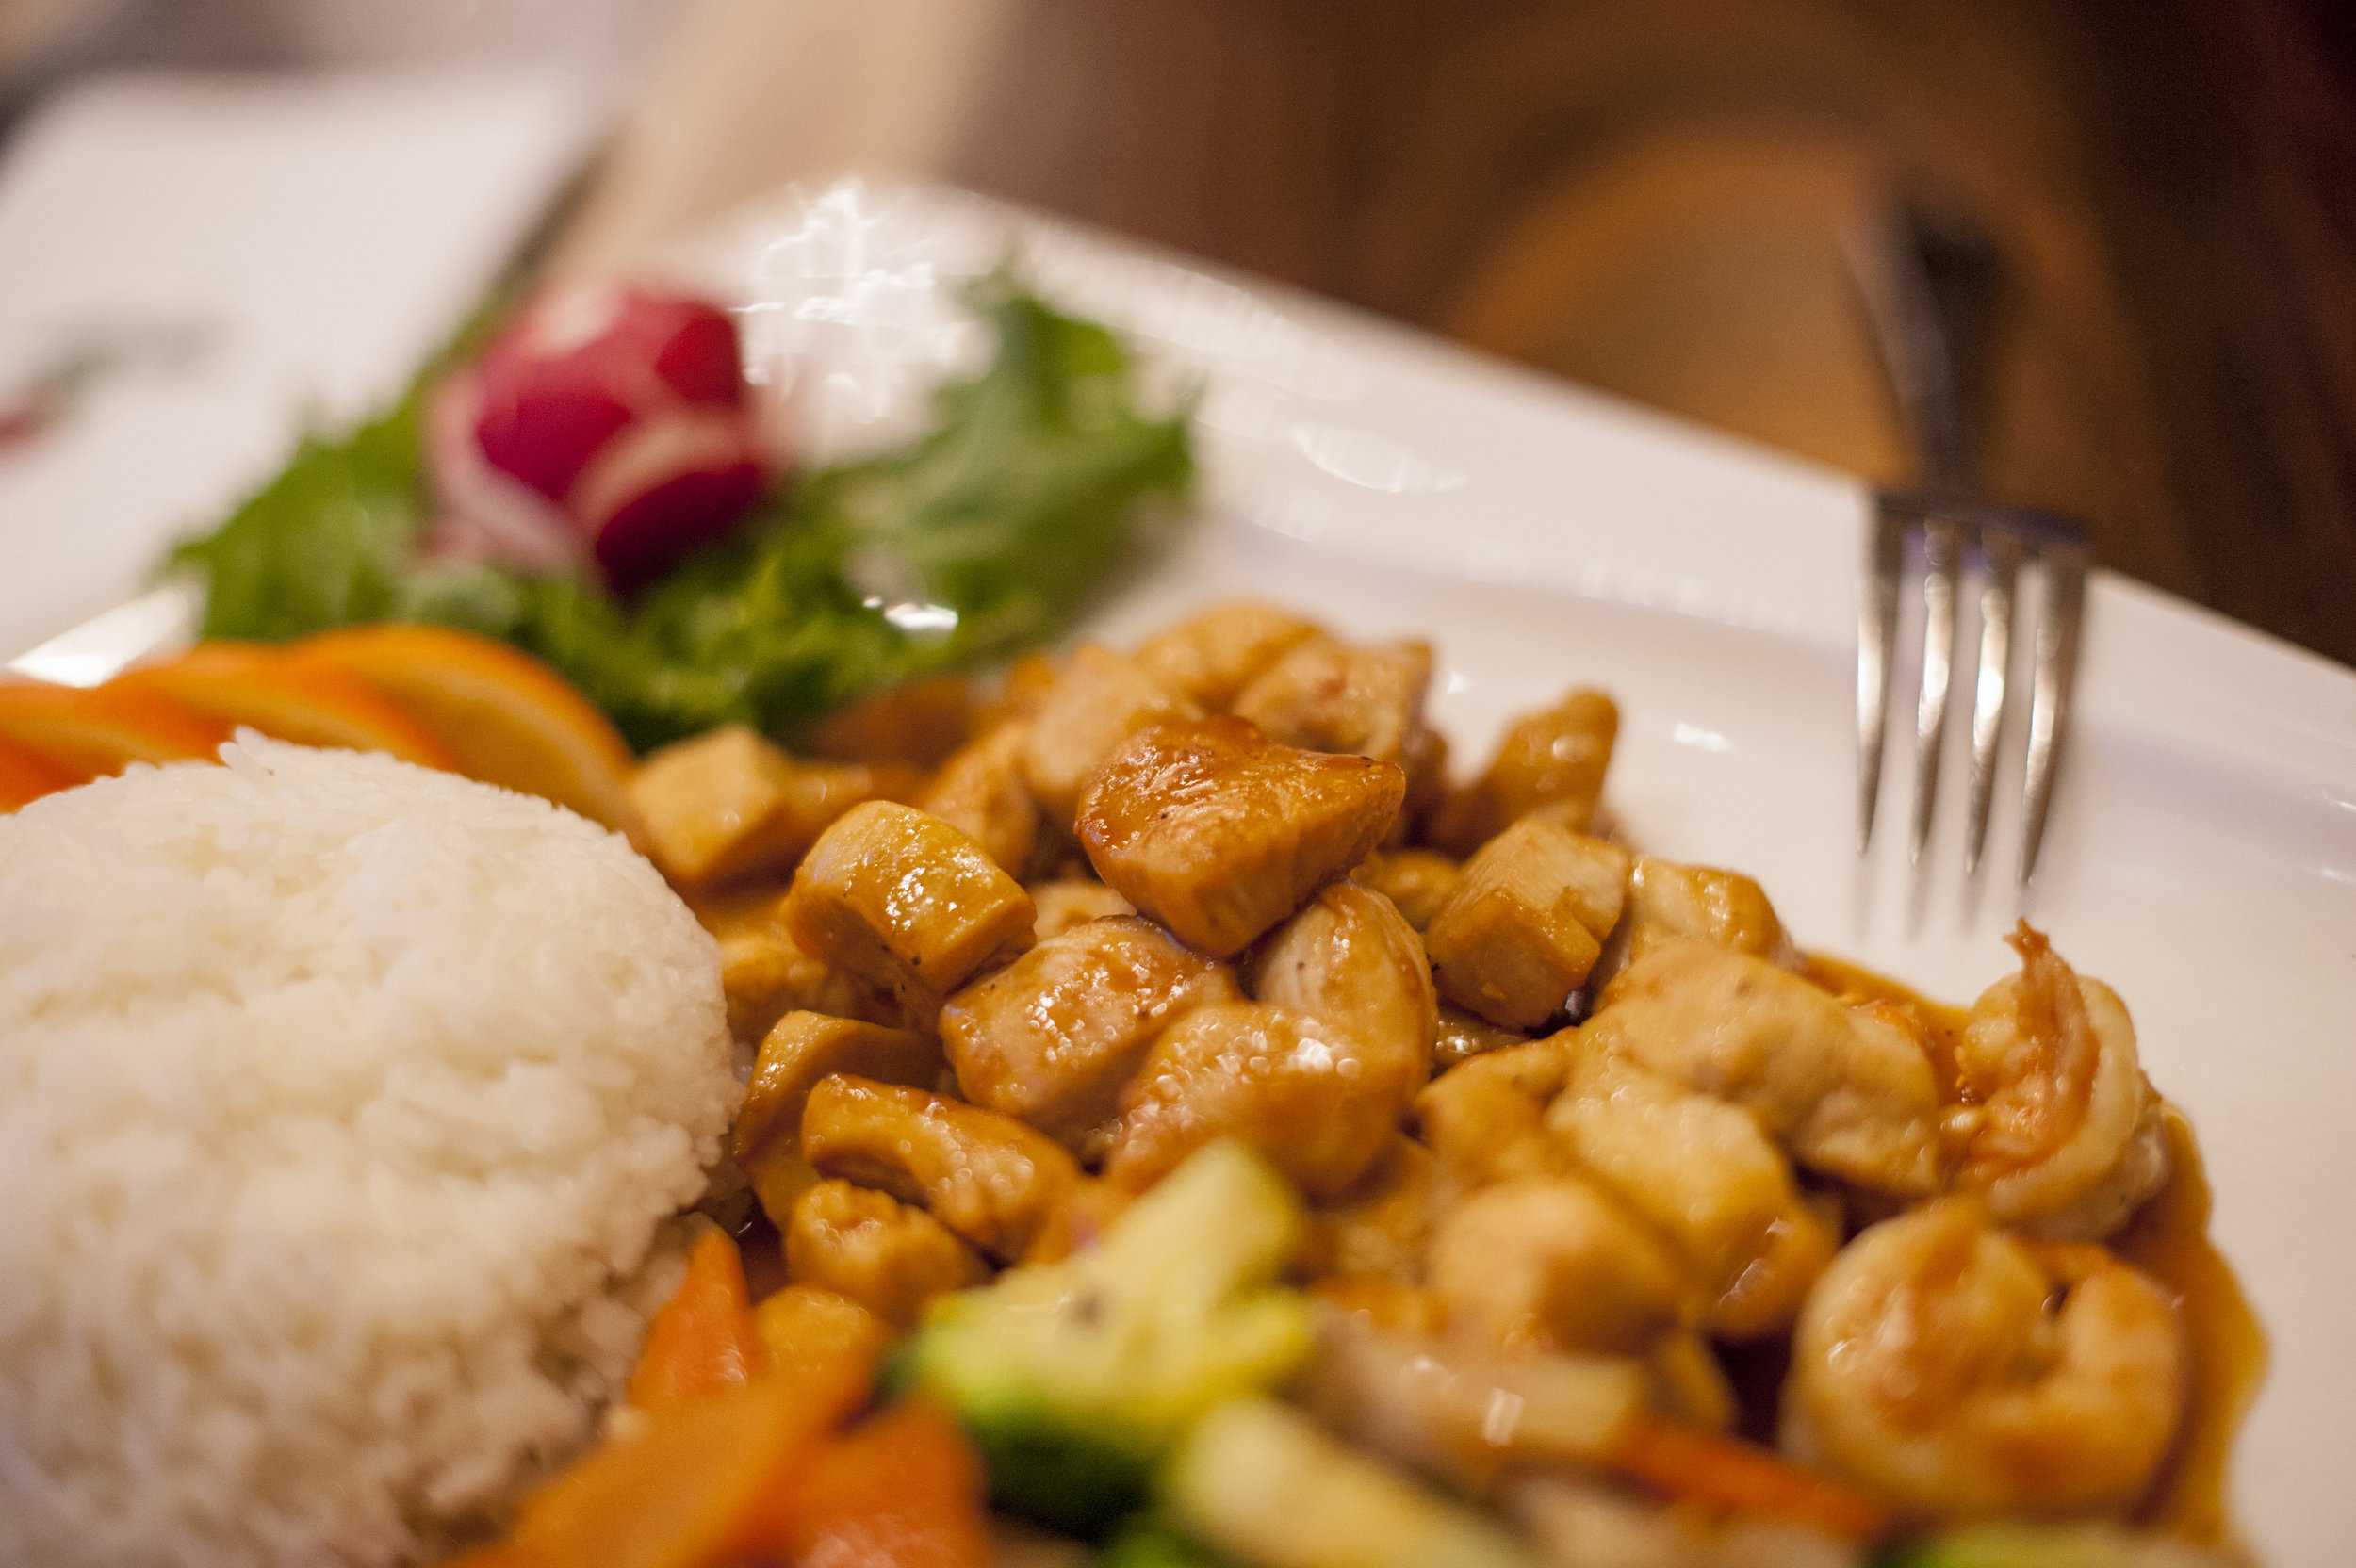 The Hibachi Chicken at Zaza Japan features a hearty mix of chicken with zucchini, carrots, mushrooms and broccoli that is as delicious to eat as its preparation is exciting to behold.